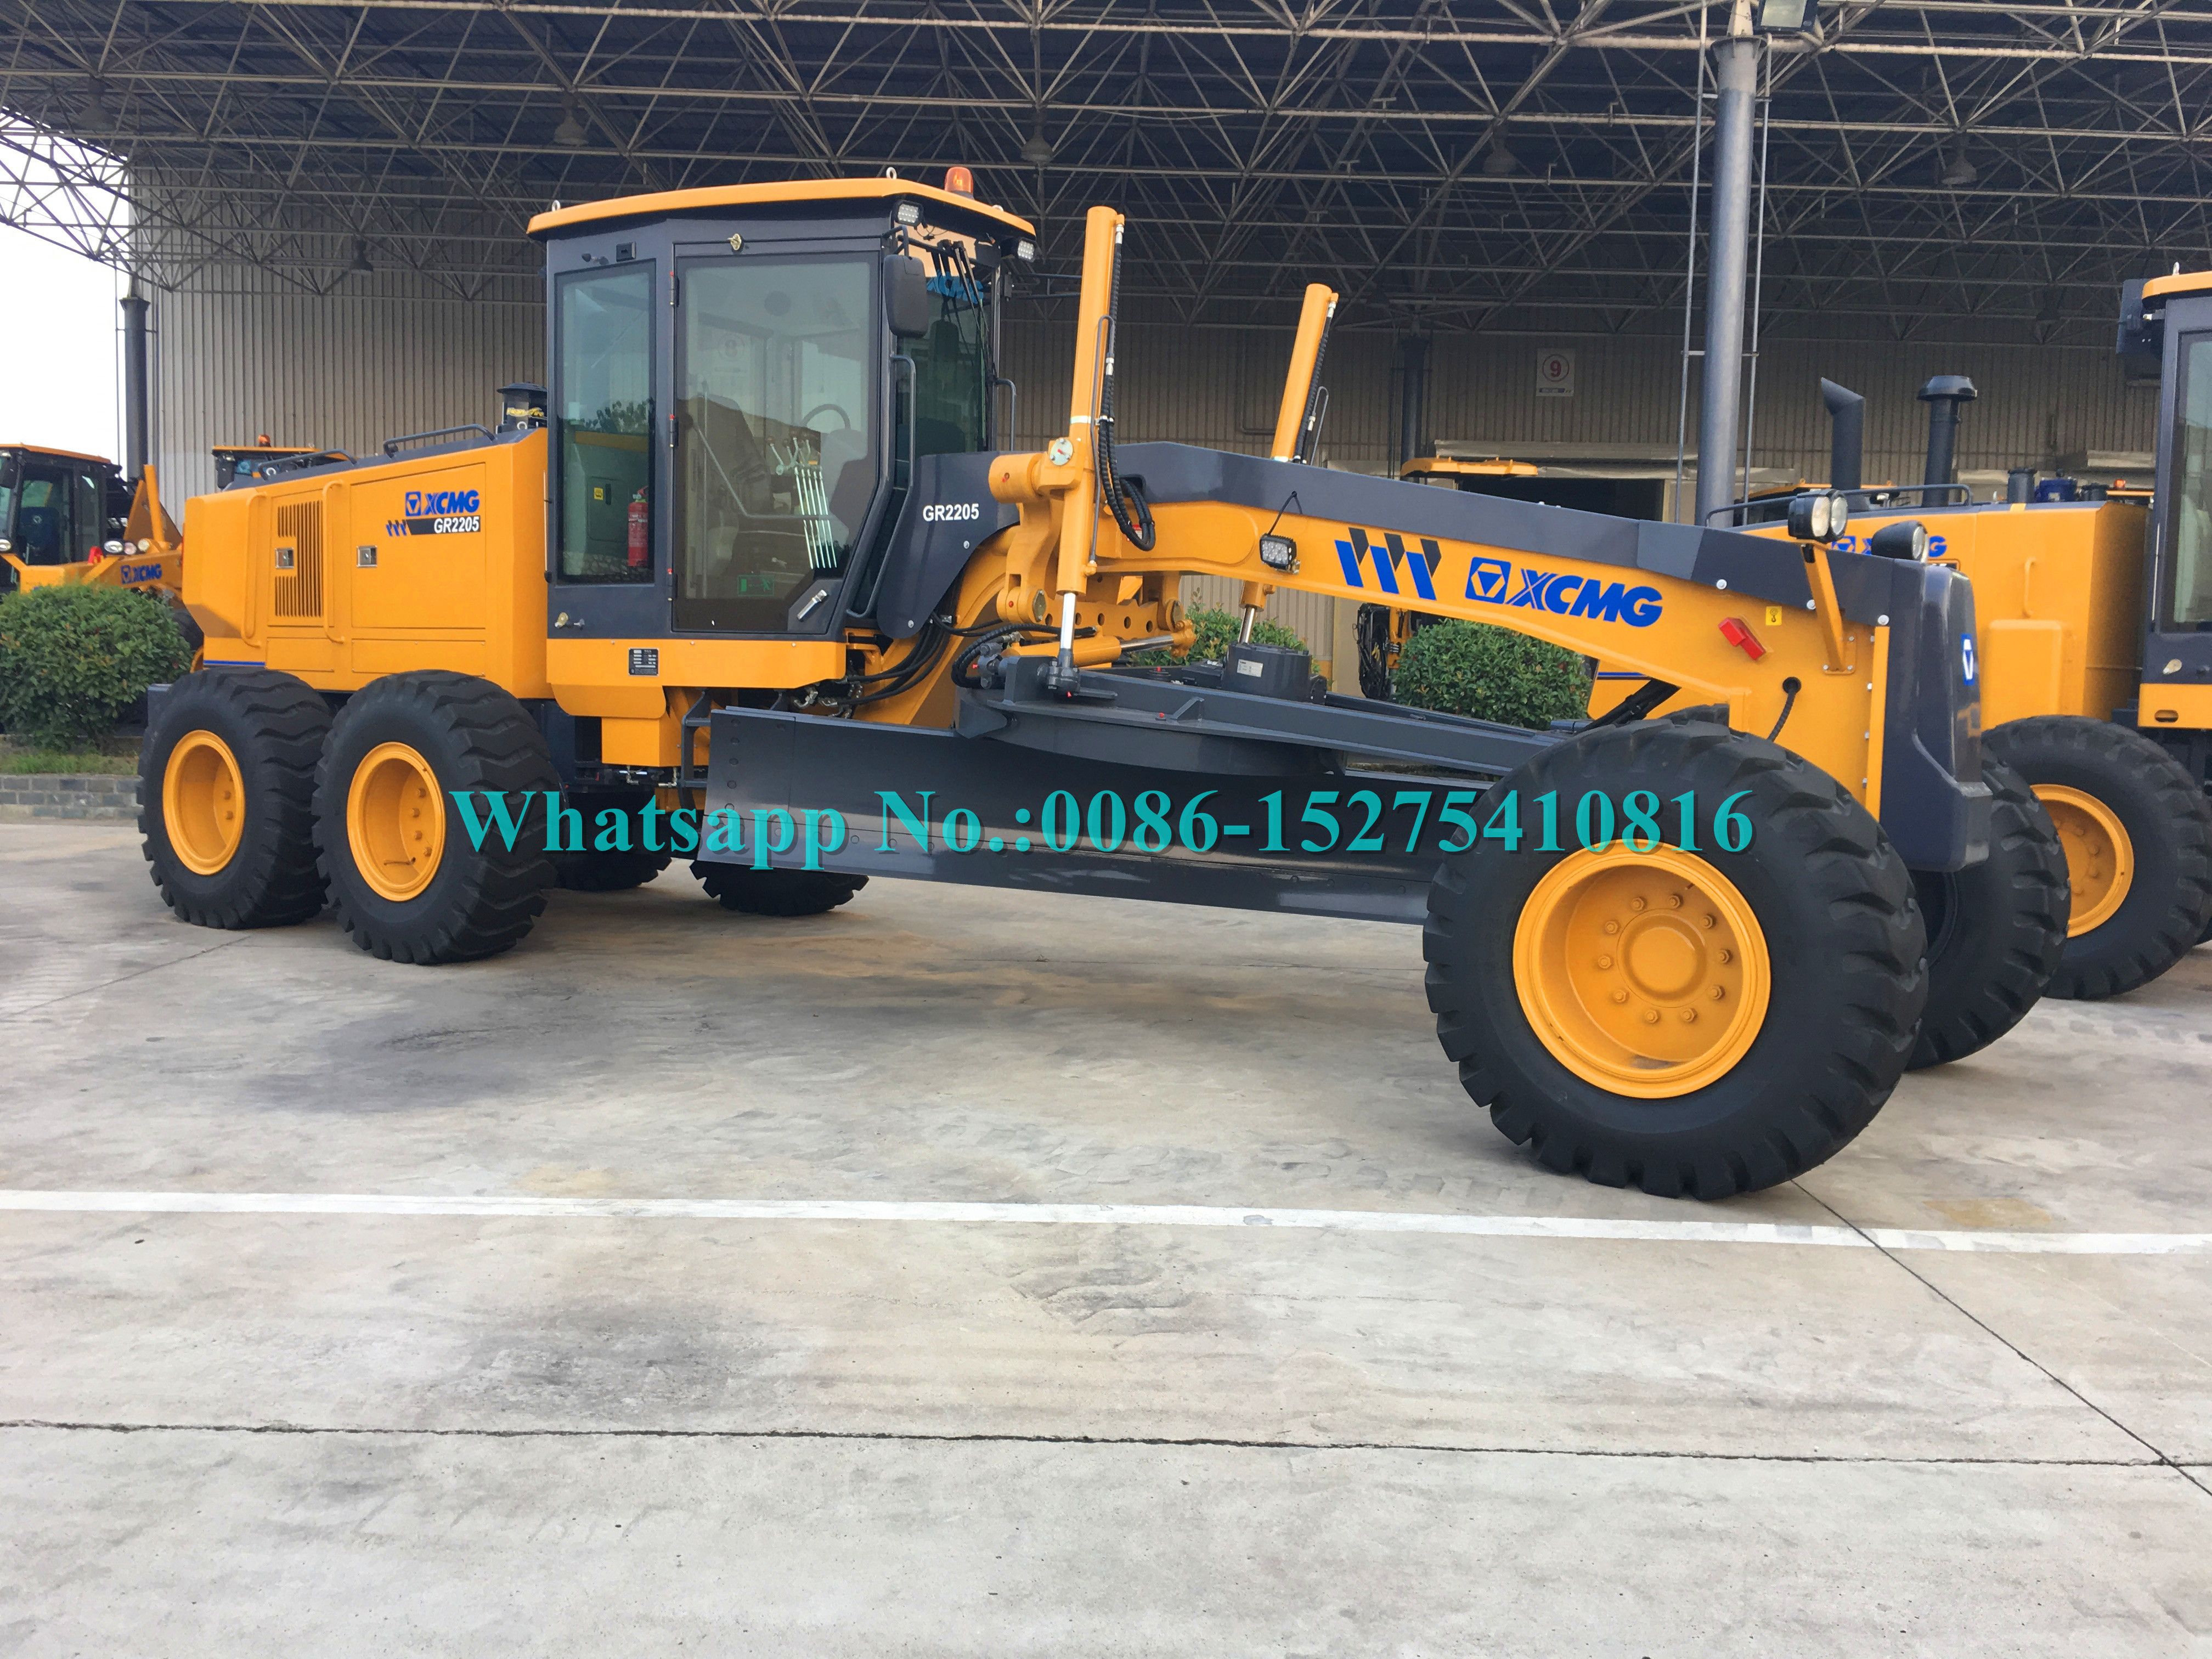 16 Ton Tractor Road Grader Road Construction Machinery XCMG GR2003 200HP 16000kg